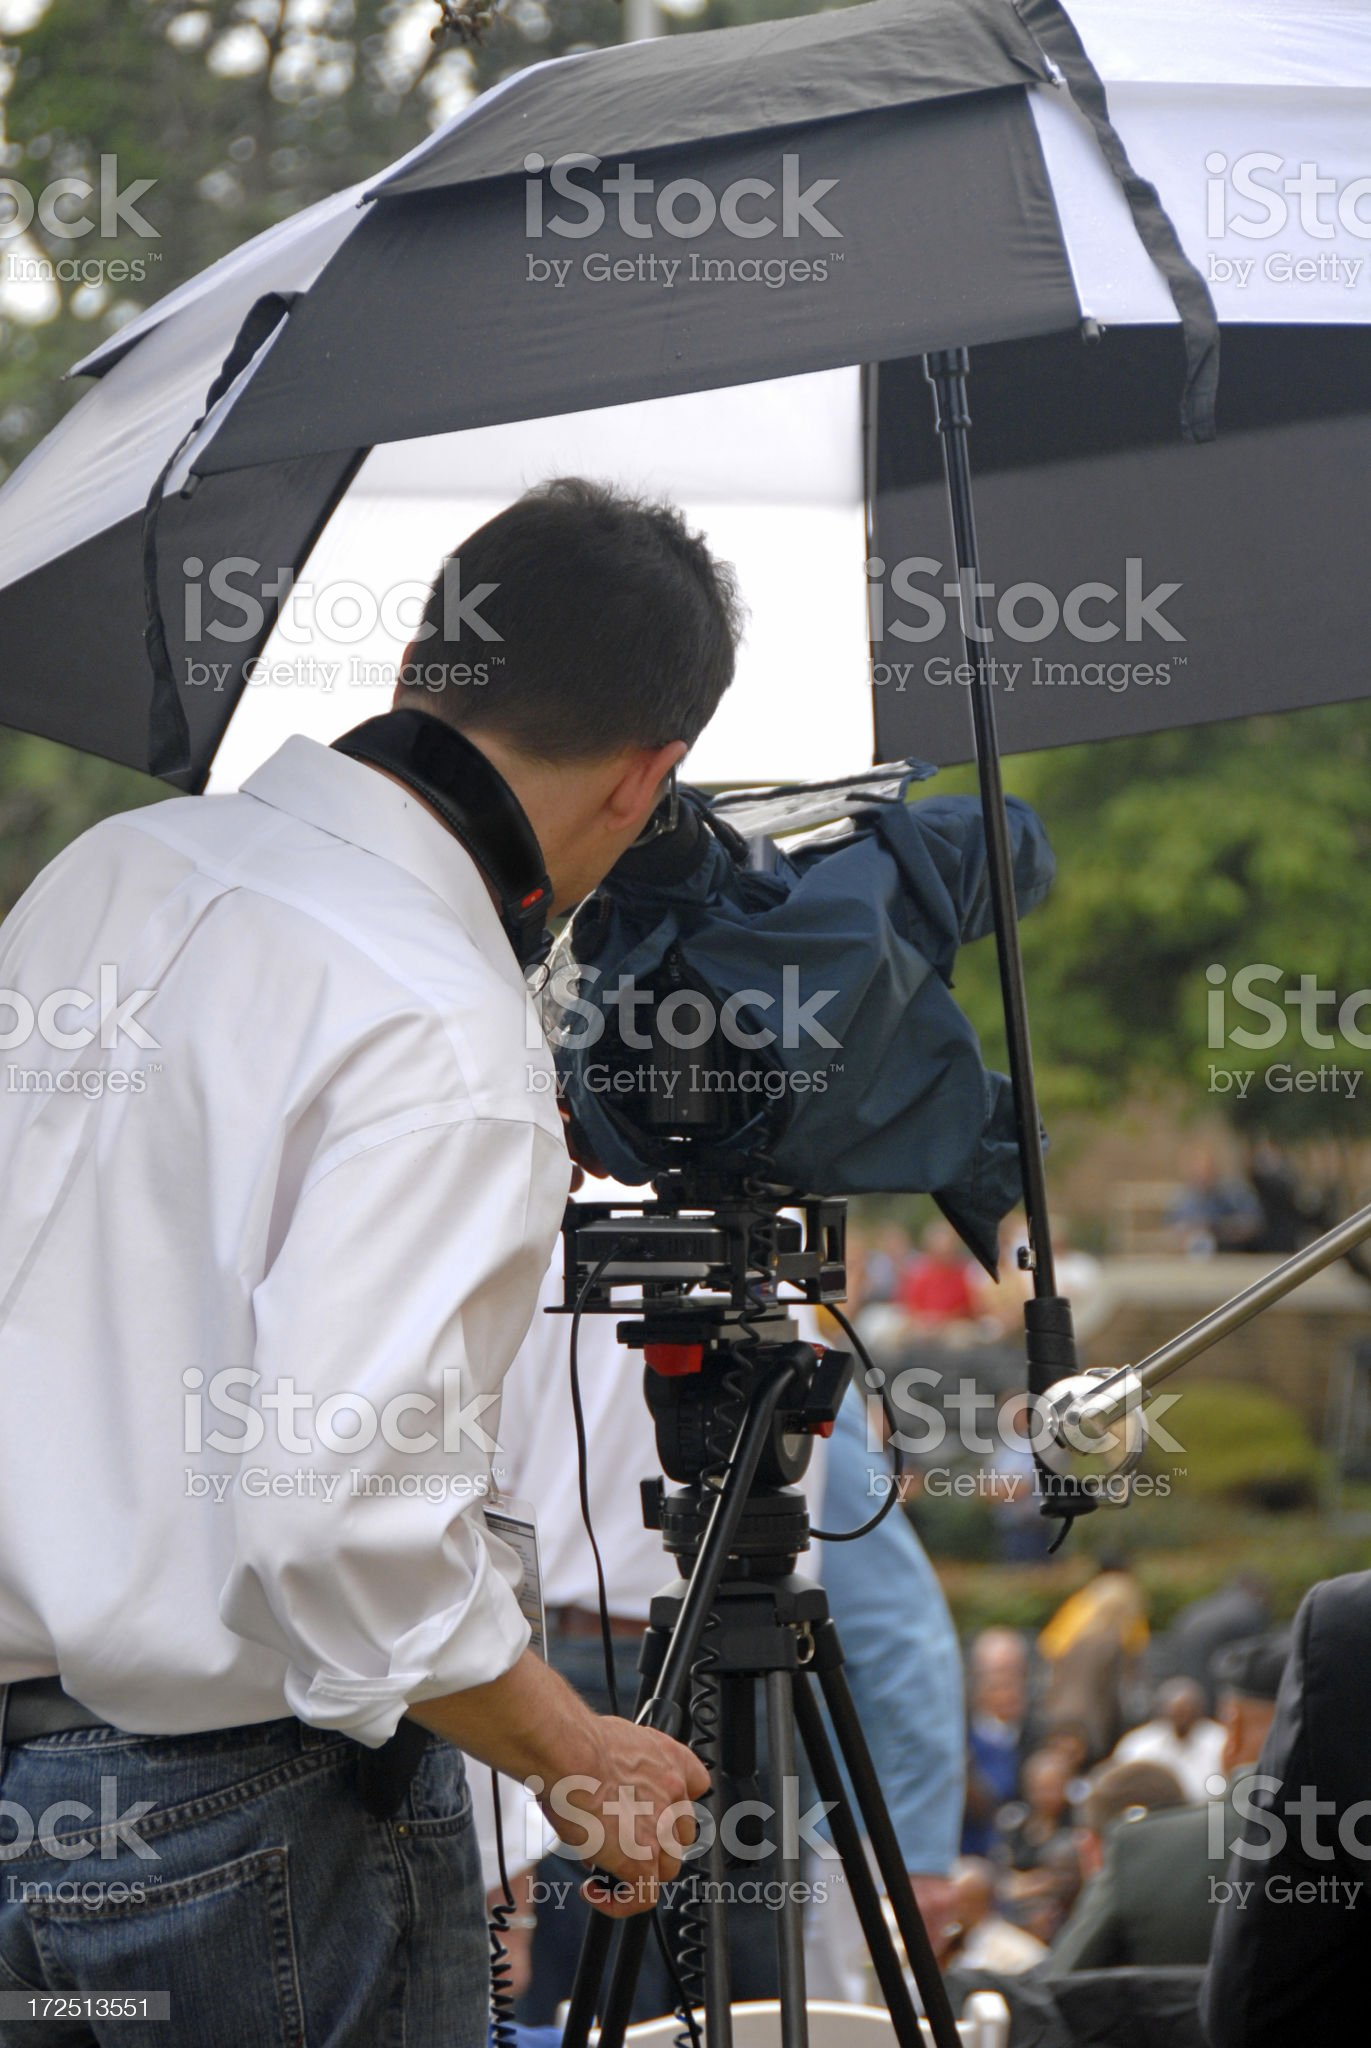 Video in the Rain royalty-free stock photo